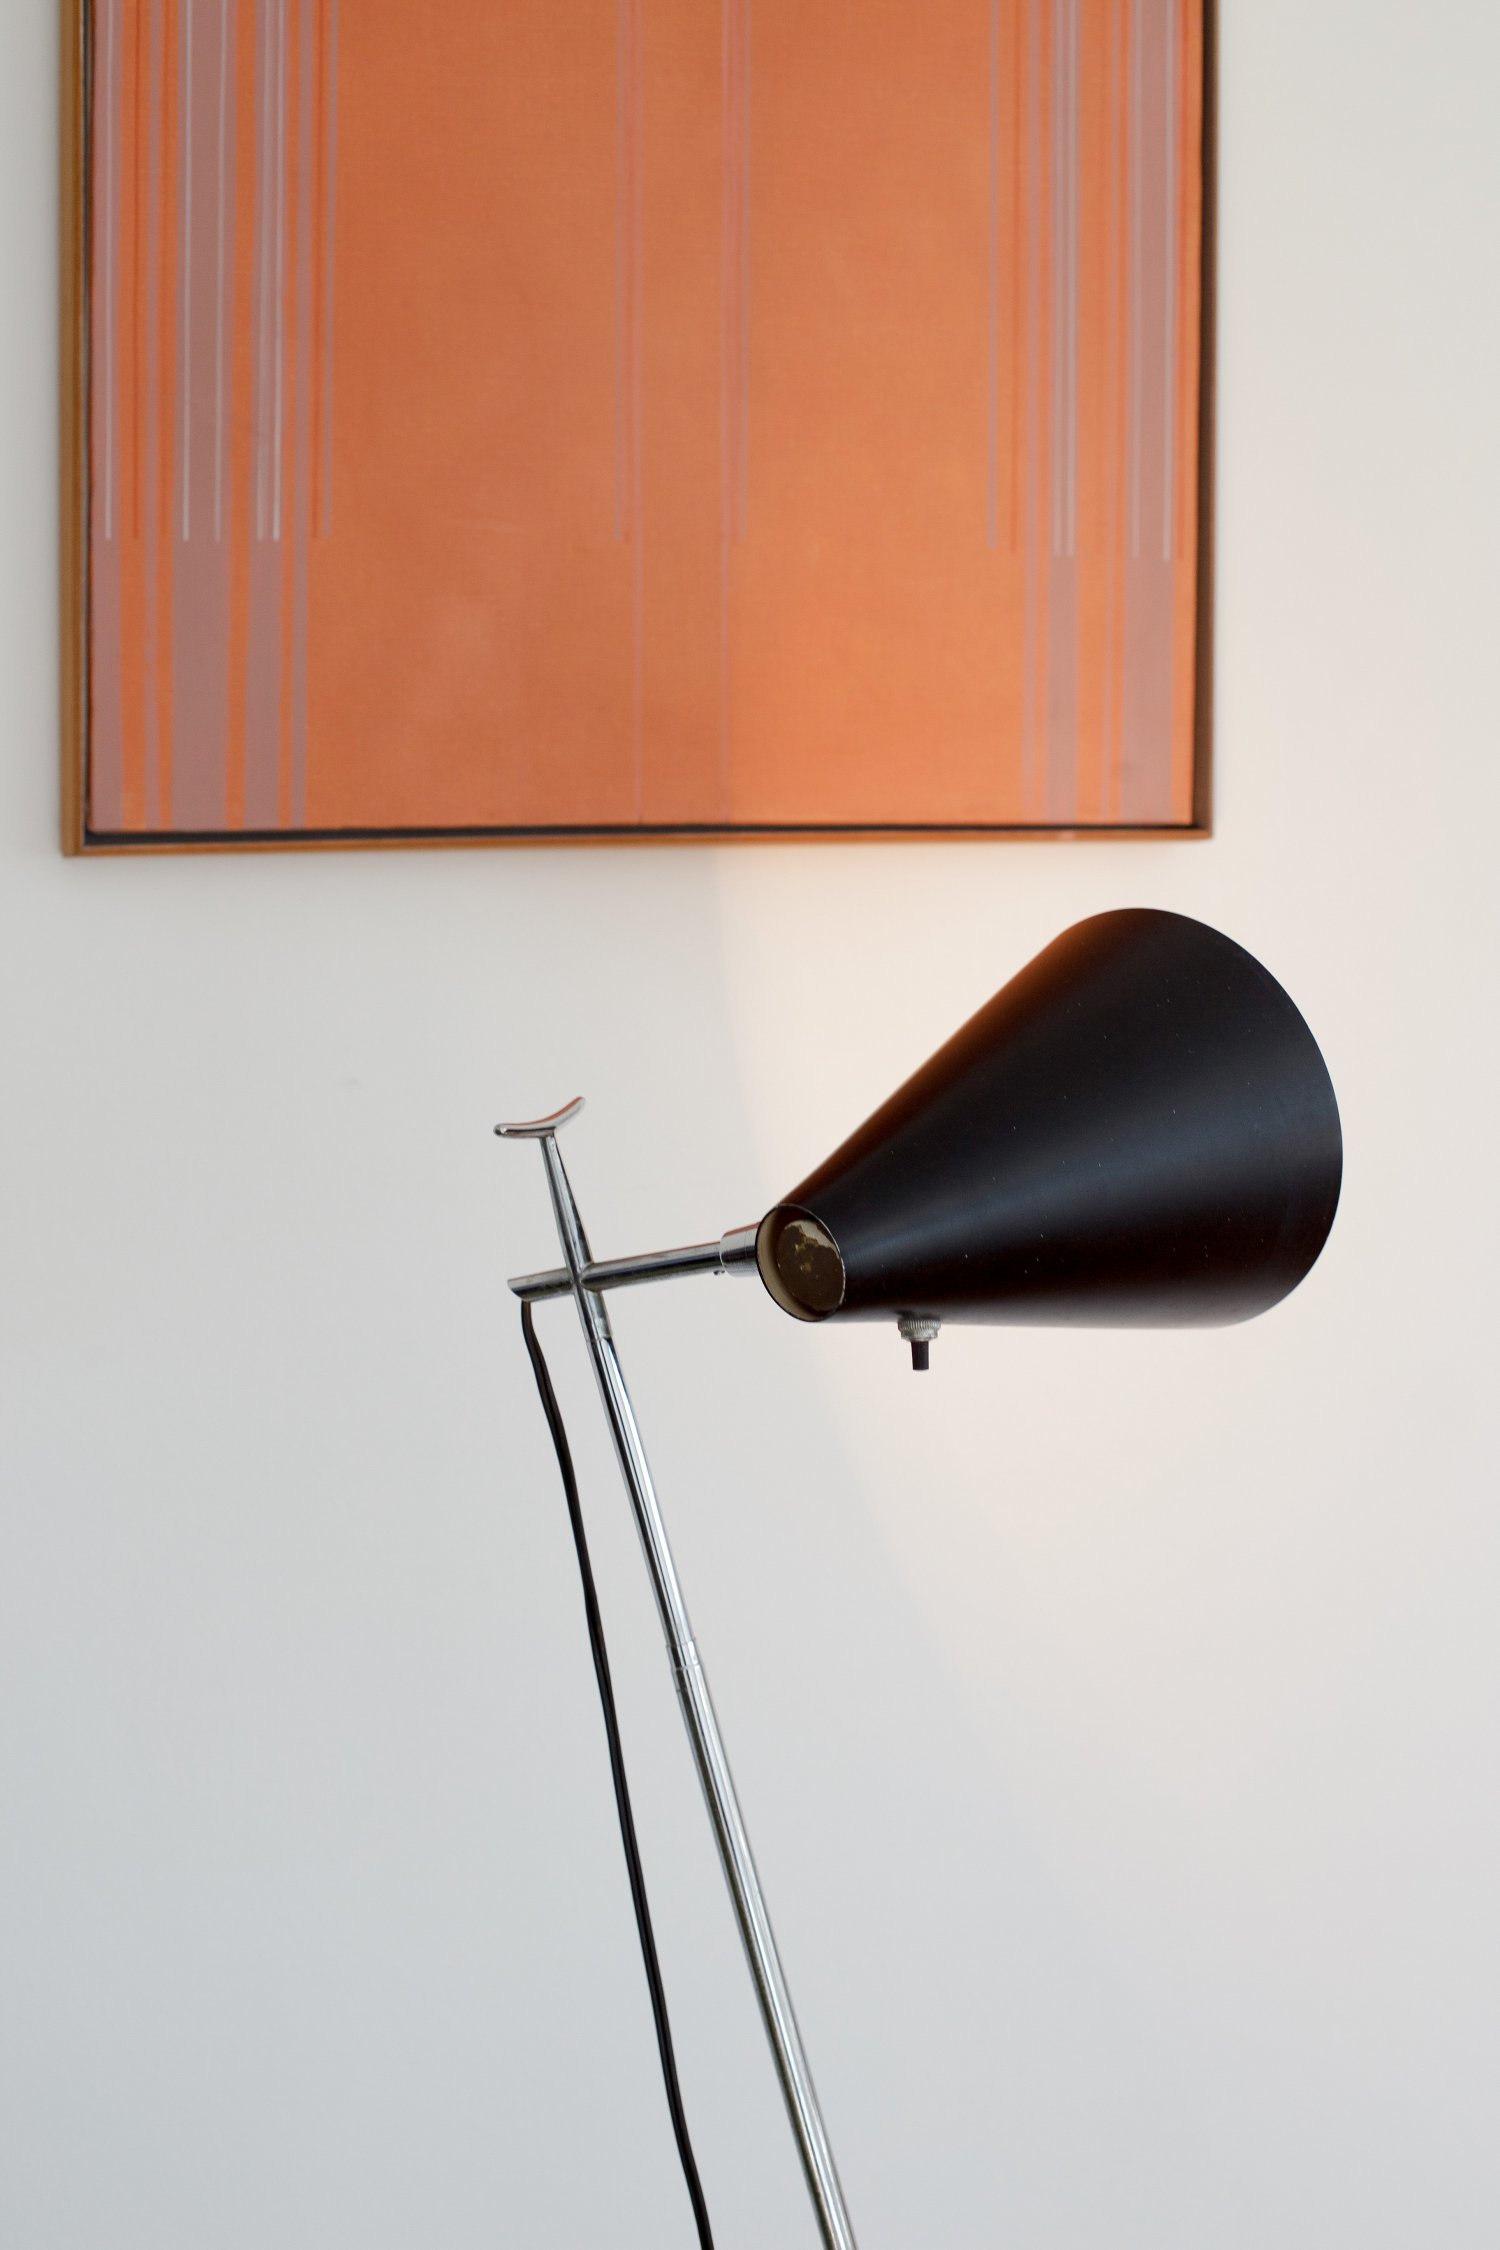 Type 201 Floor / Desk lamp by Giuseppe Ostuni and Renato Forti for Oluce